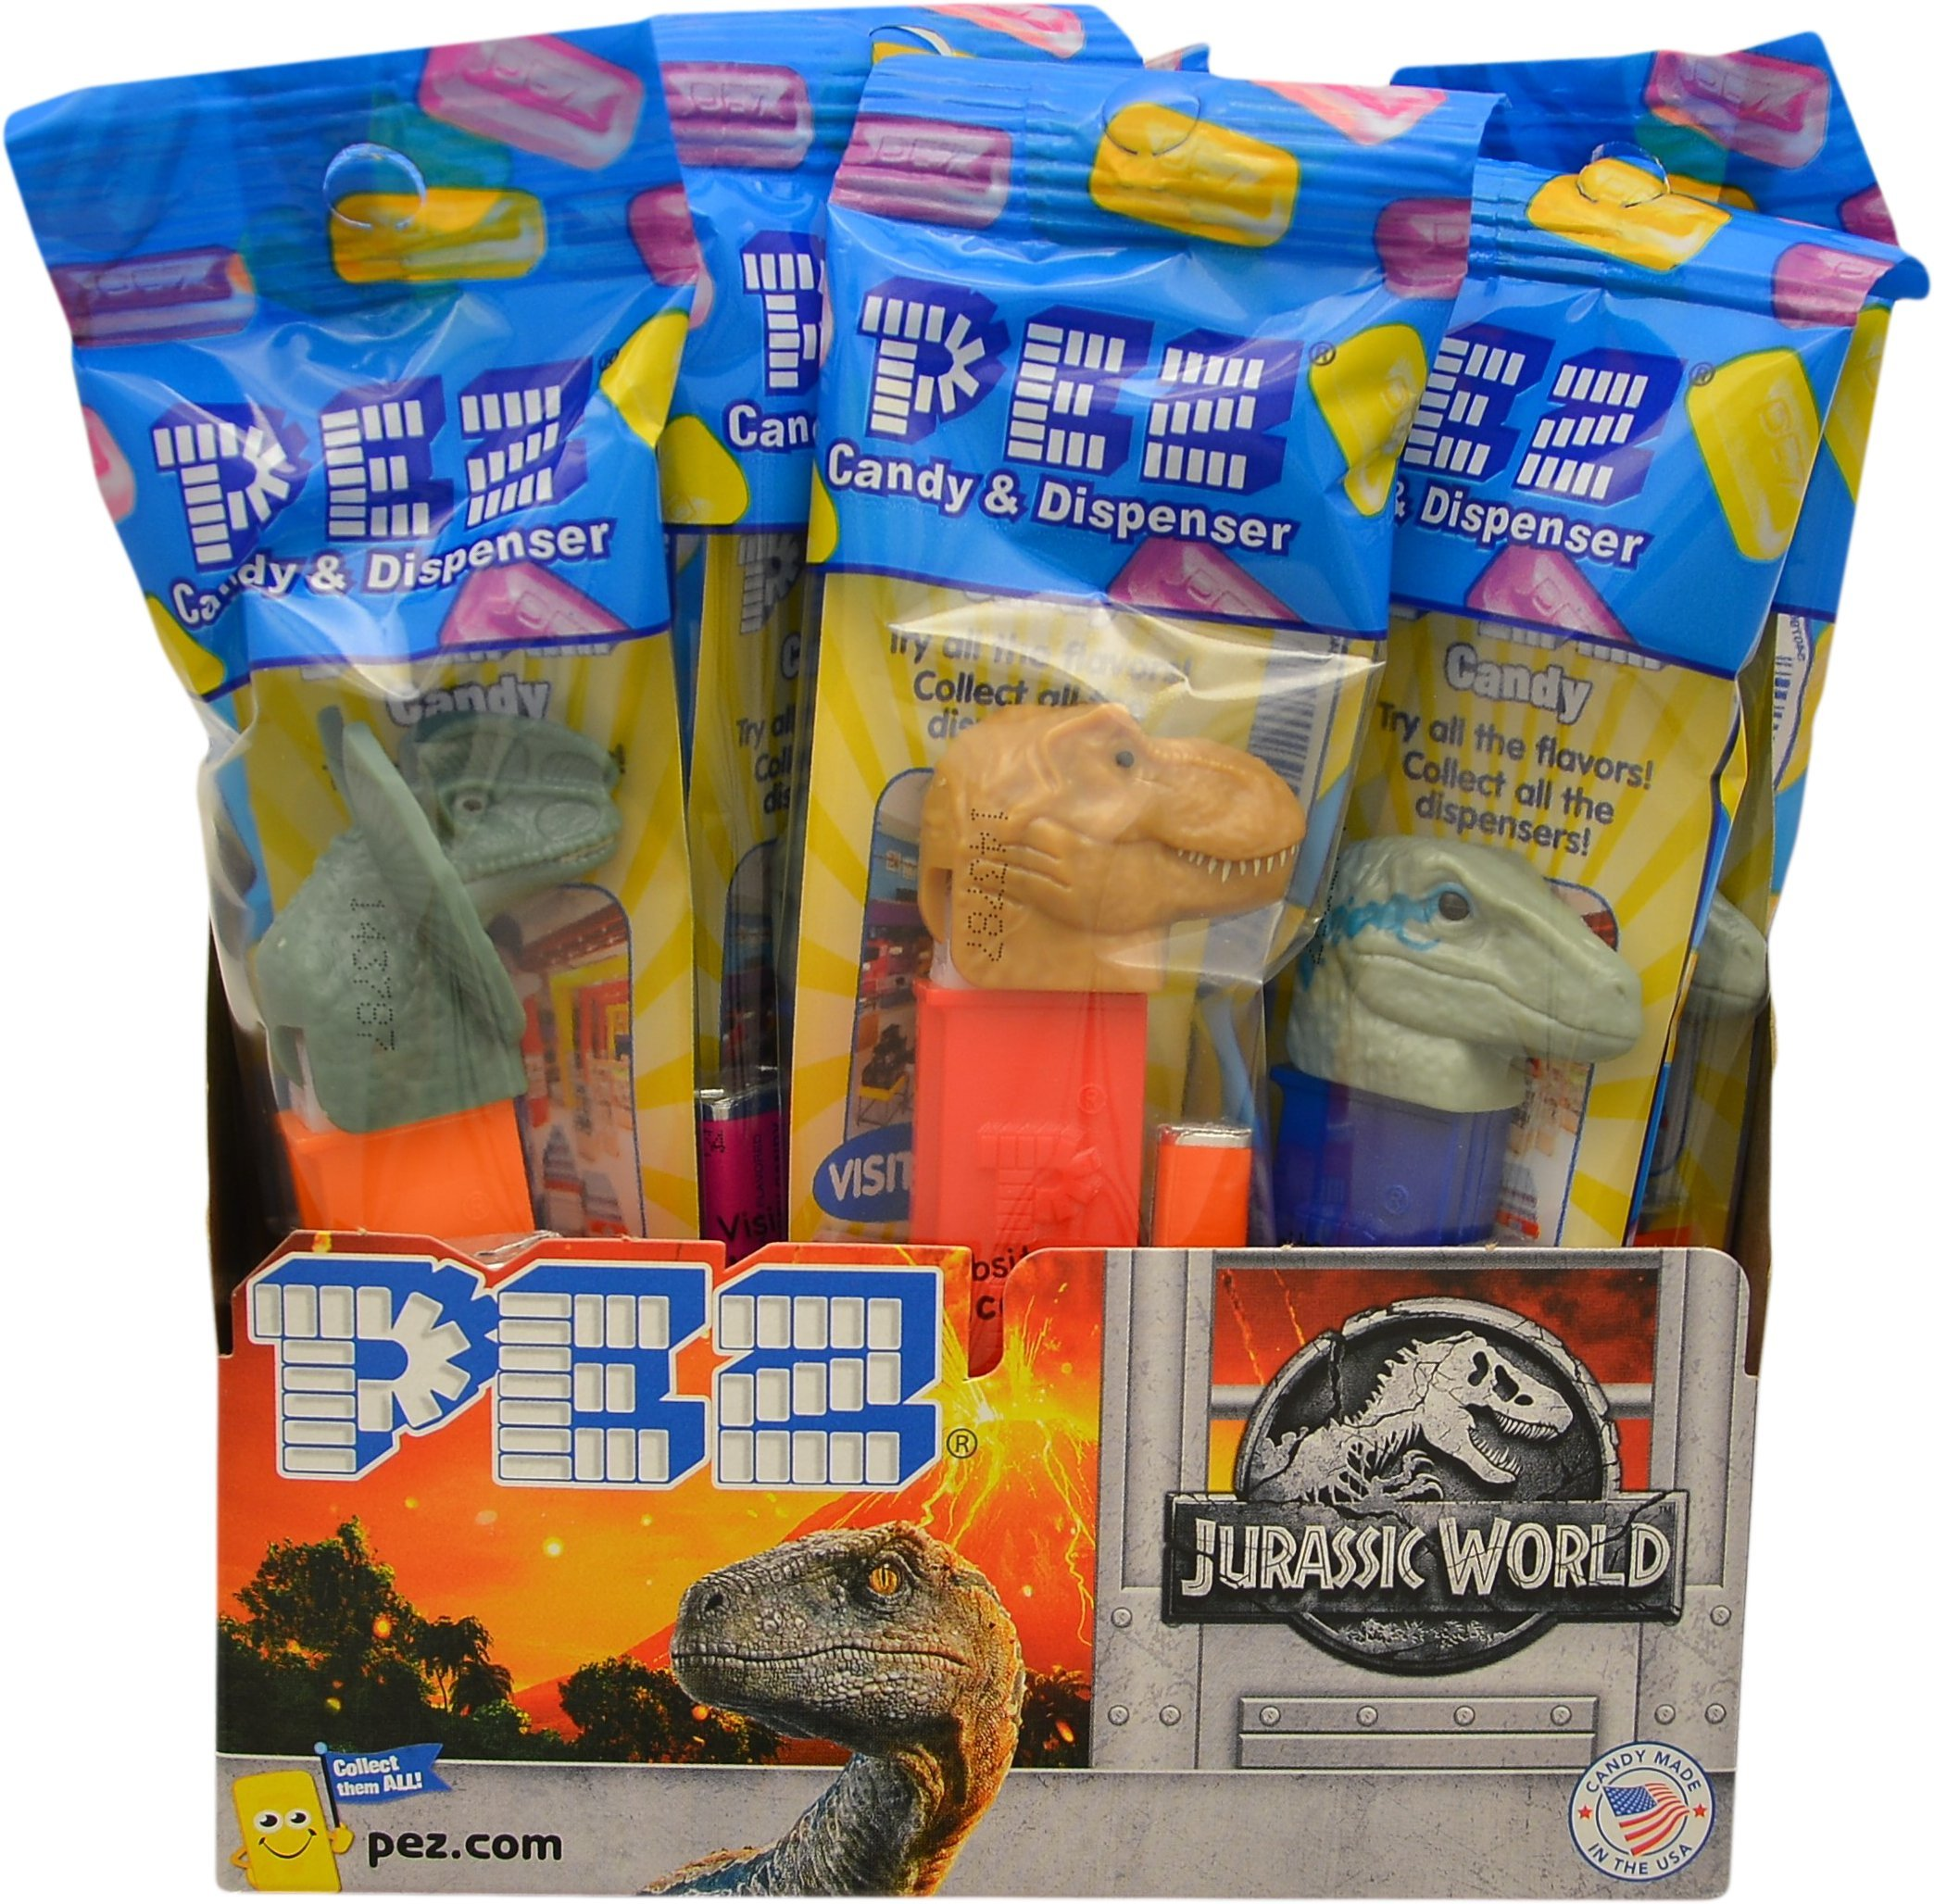 Pez Candy Jurassic World Fallen Kingdom Candy Dispensers - Individually Wrapped - Great for Party Favors and Pez Collector's (12 Pack)